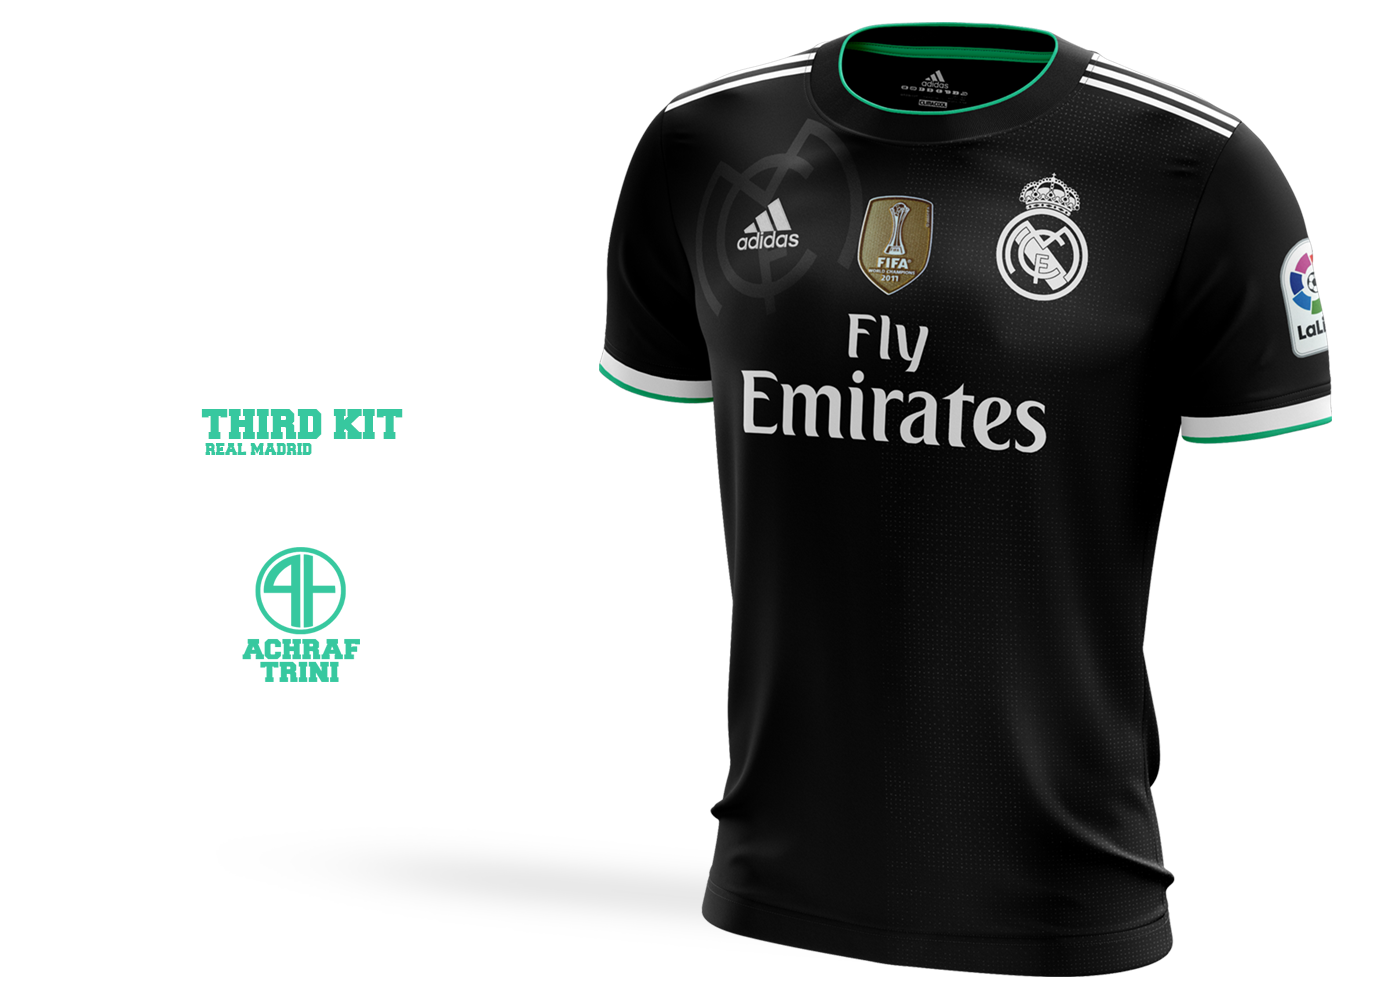 buy online 1d331 c1056 Real madrid | Adidas Concept shirts 2018-19 on Behance